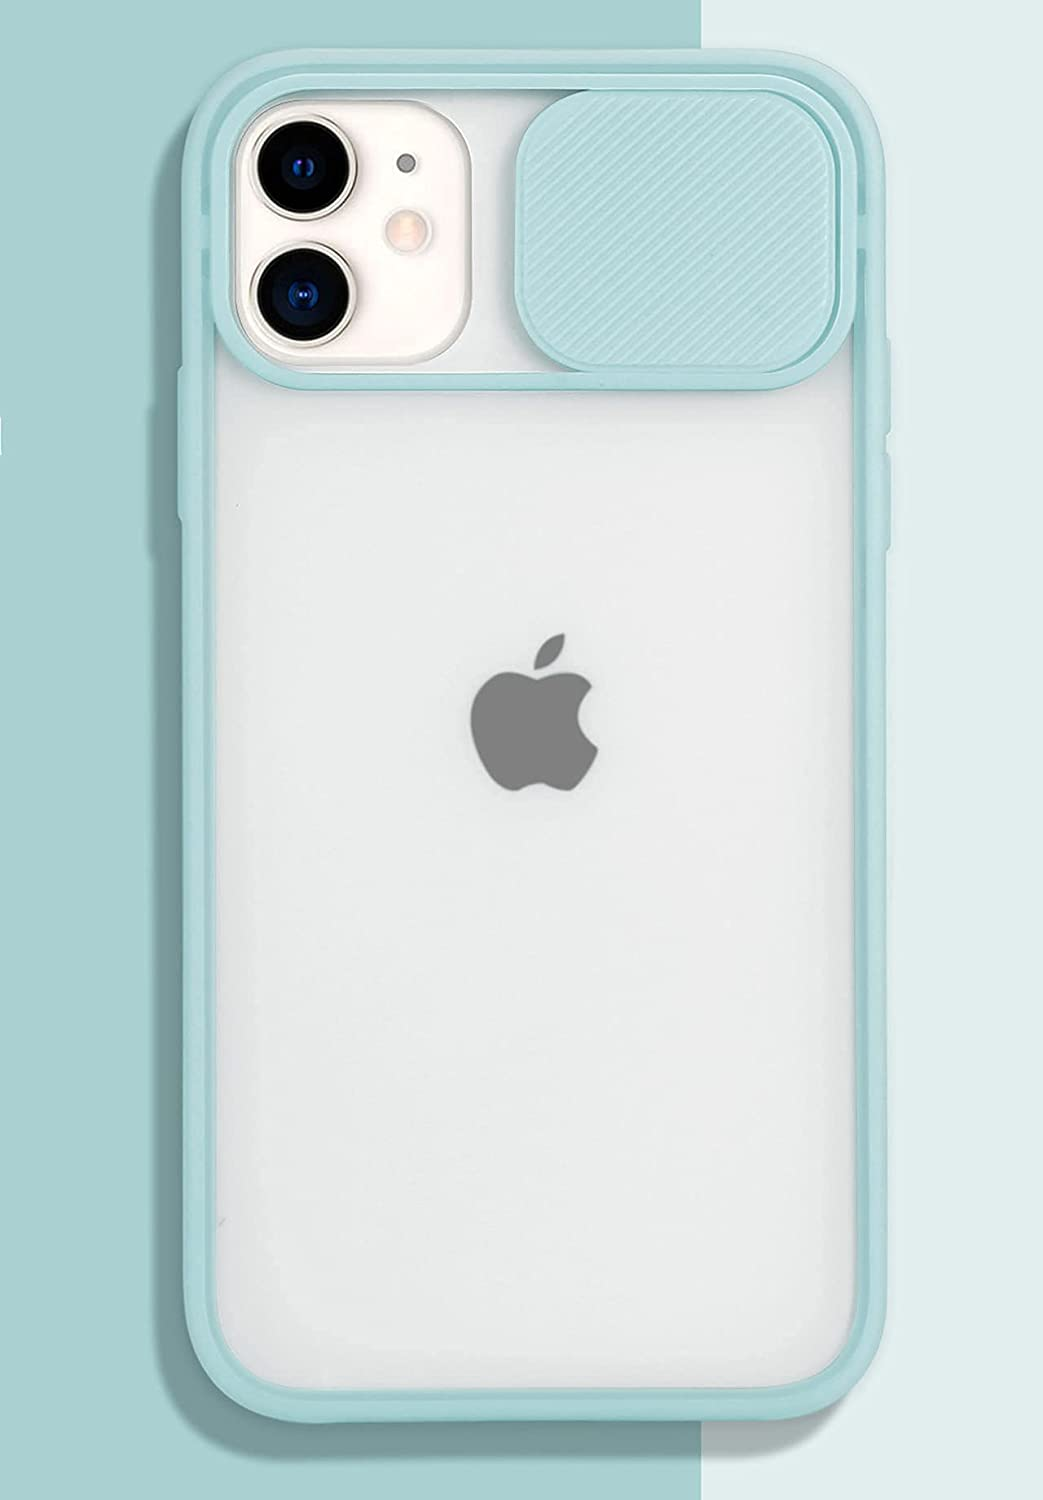 iPhone 11 Pro Max Case with Camera Cover [Slide Camera Lens Protection][Matte Soft Bumper][Anti-Fingerprint] Camera Lens Protector Slide Camera Cover Case for iPhone 11 Pro Max LightBlue